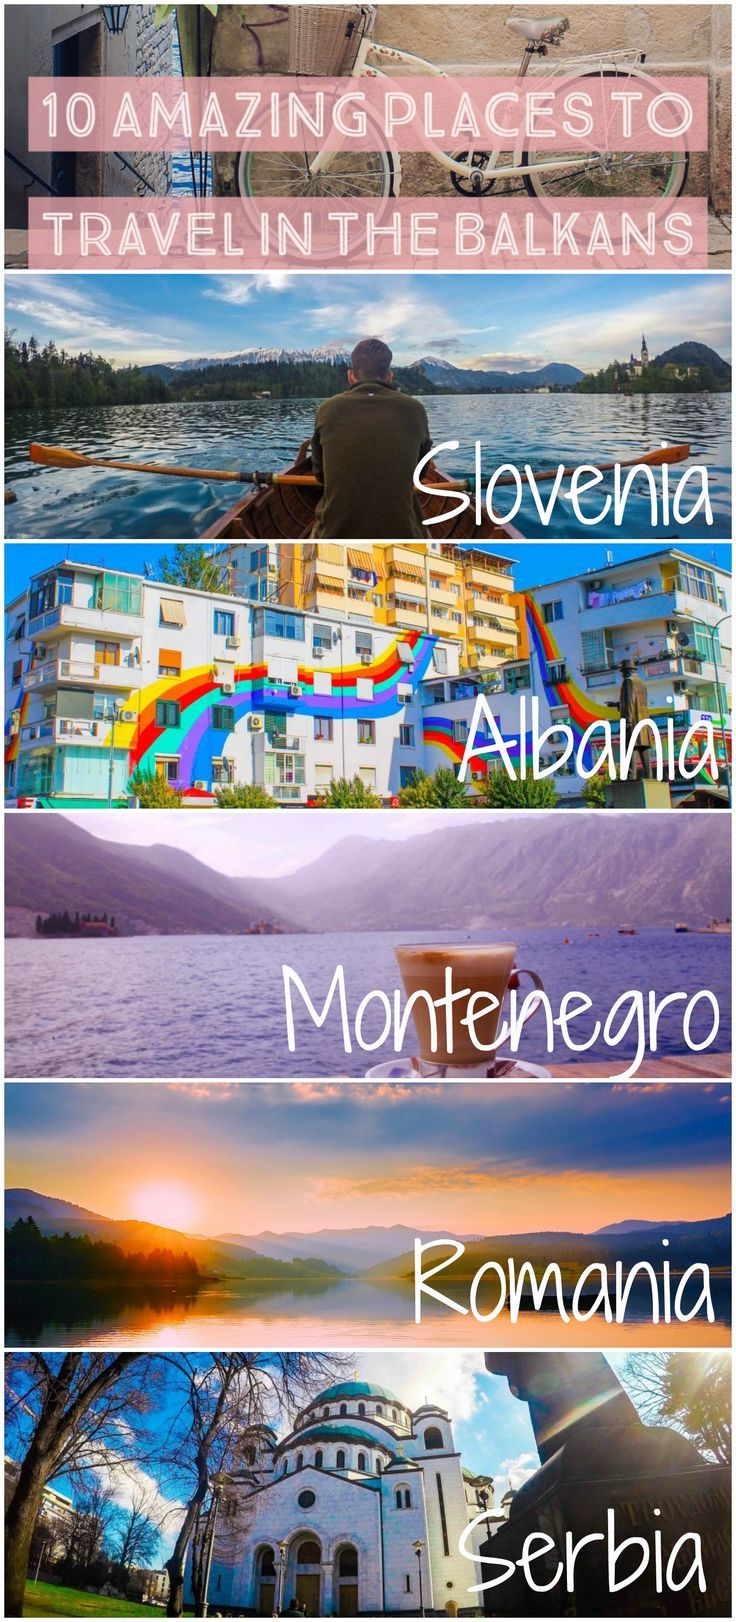 Some of the best places to visit in the Balkans and throughout Eastern Europe. Through Slovenia, Albania, Croatia, Montenegro, Macedonia, Romania, and Serbia!